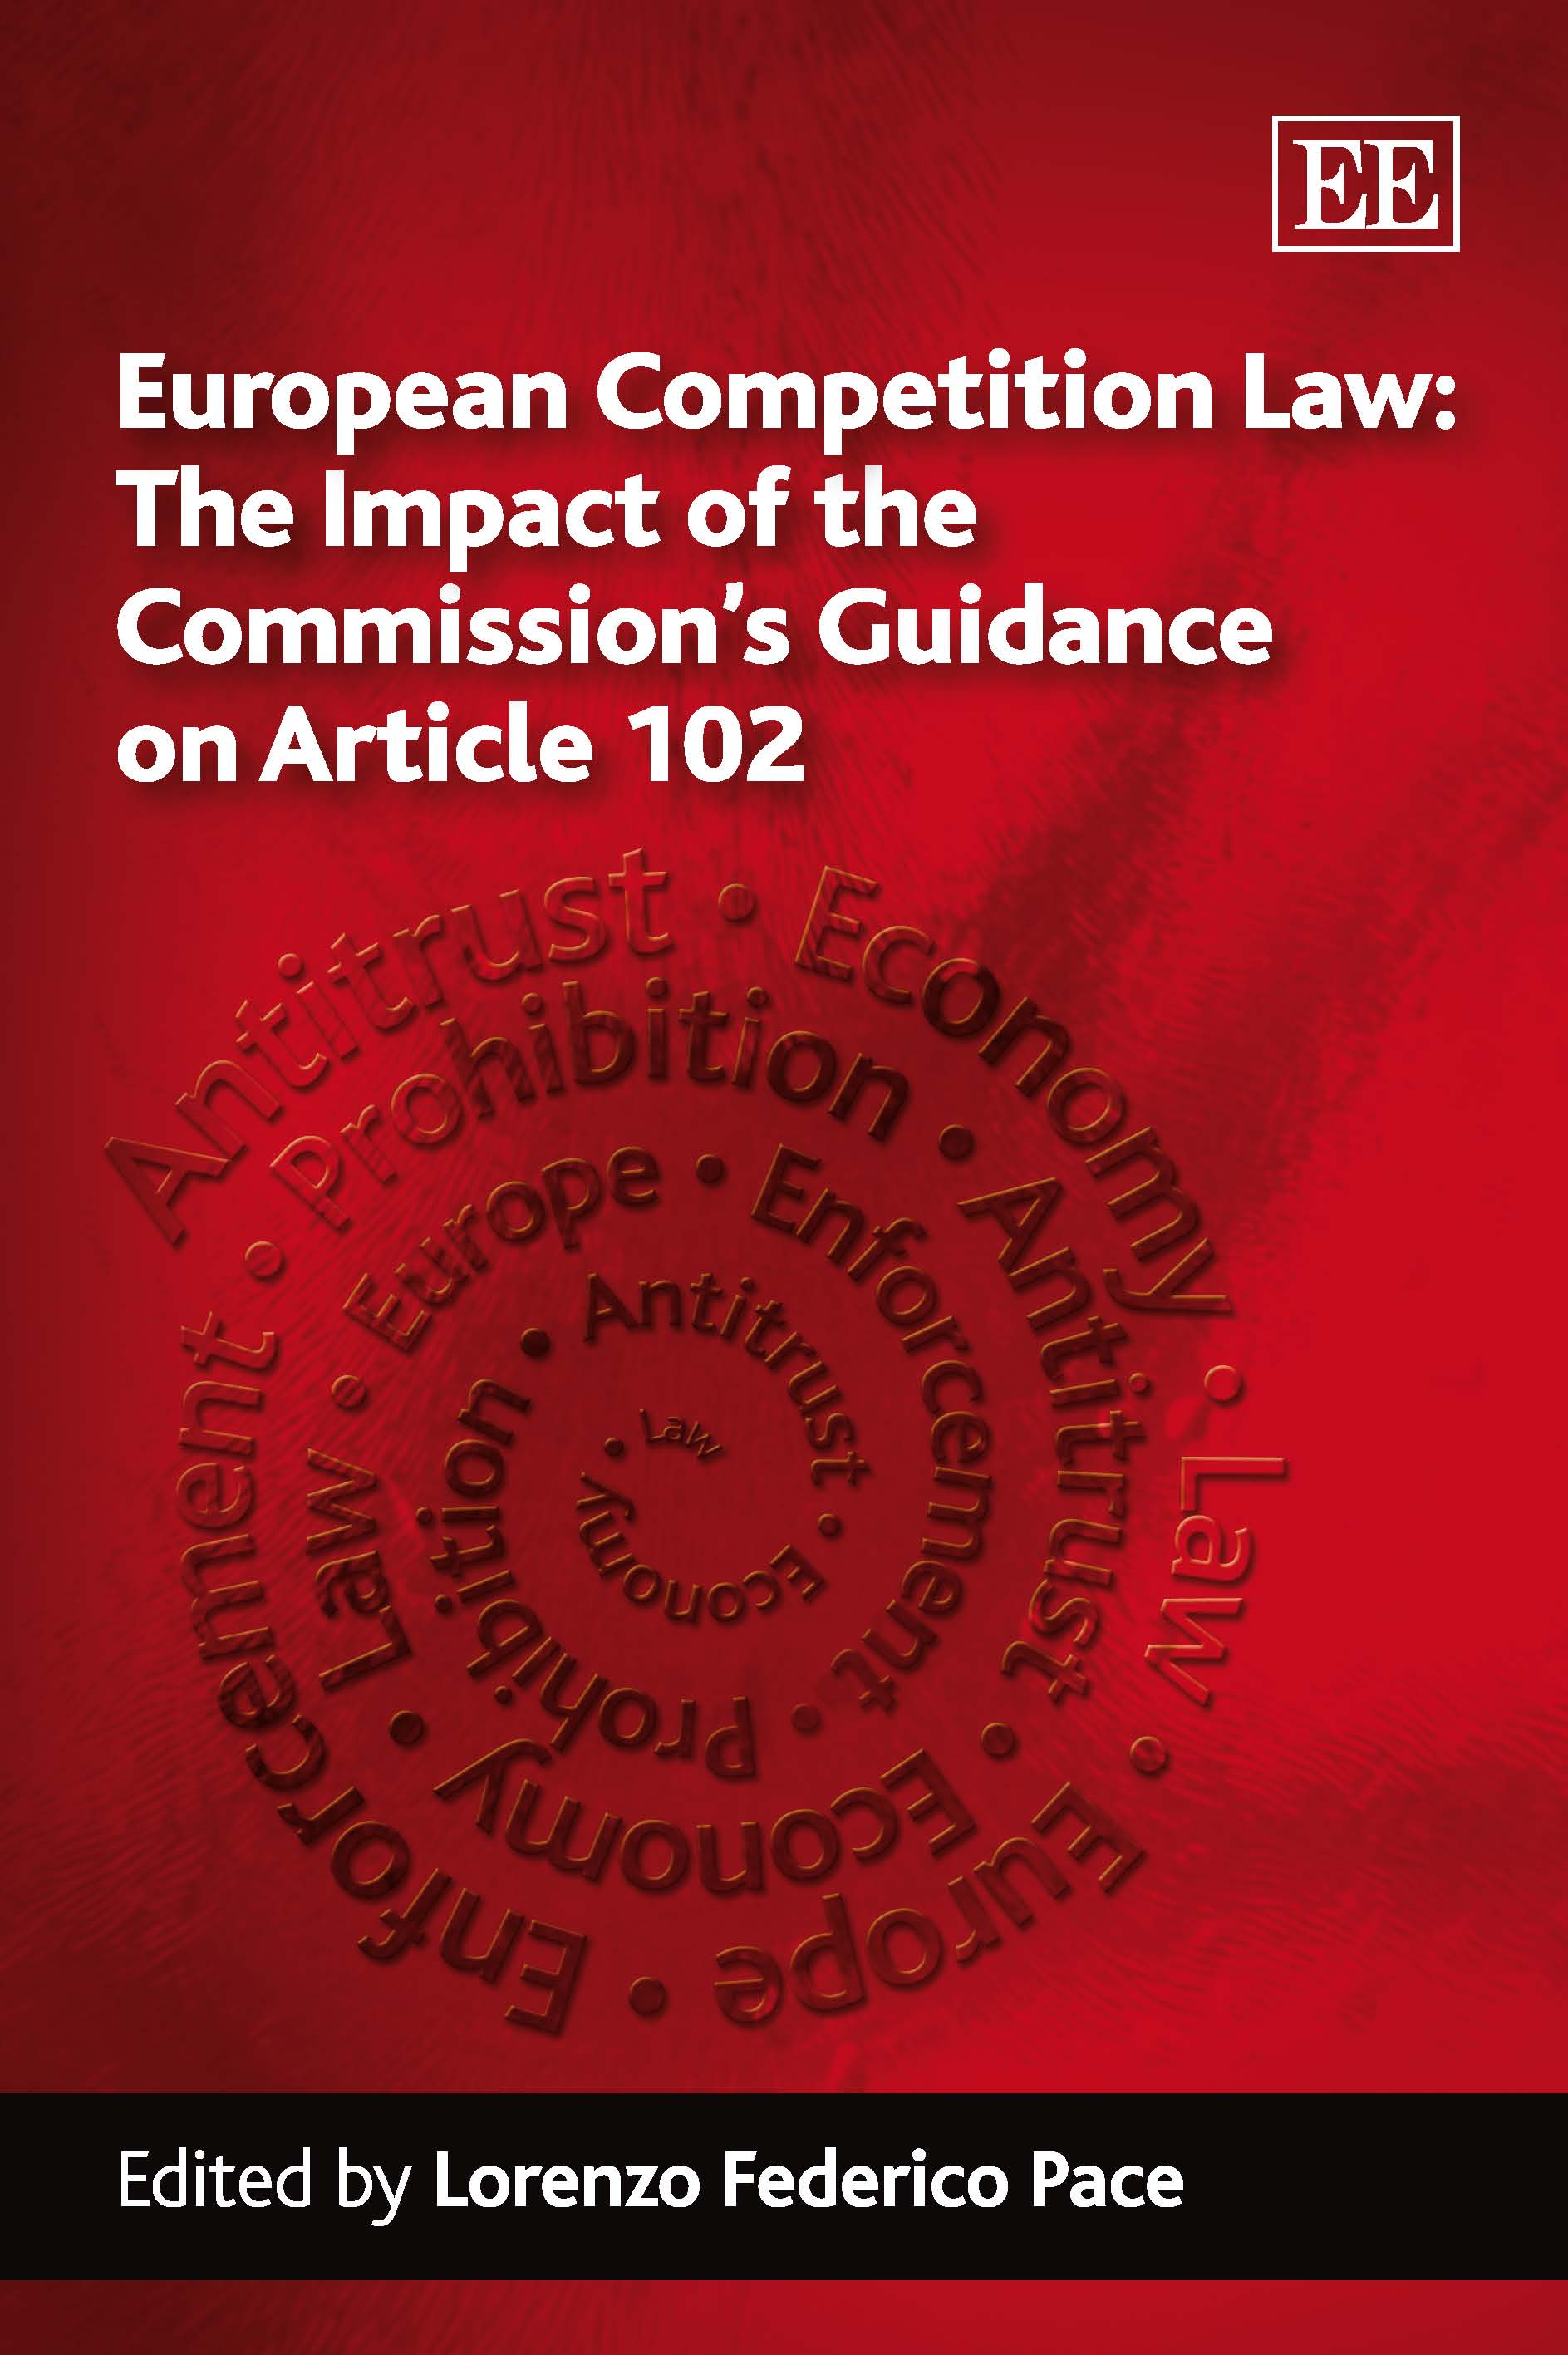 European Competition Law: The Impact of the Commission's Guidance on Article 102